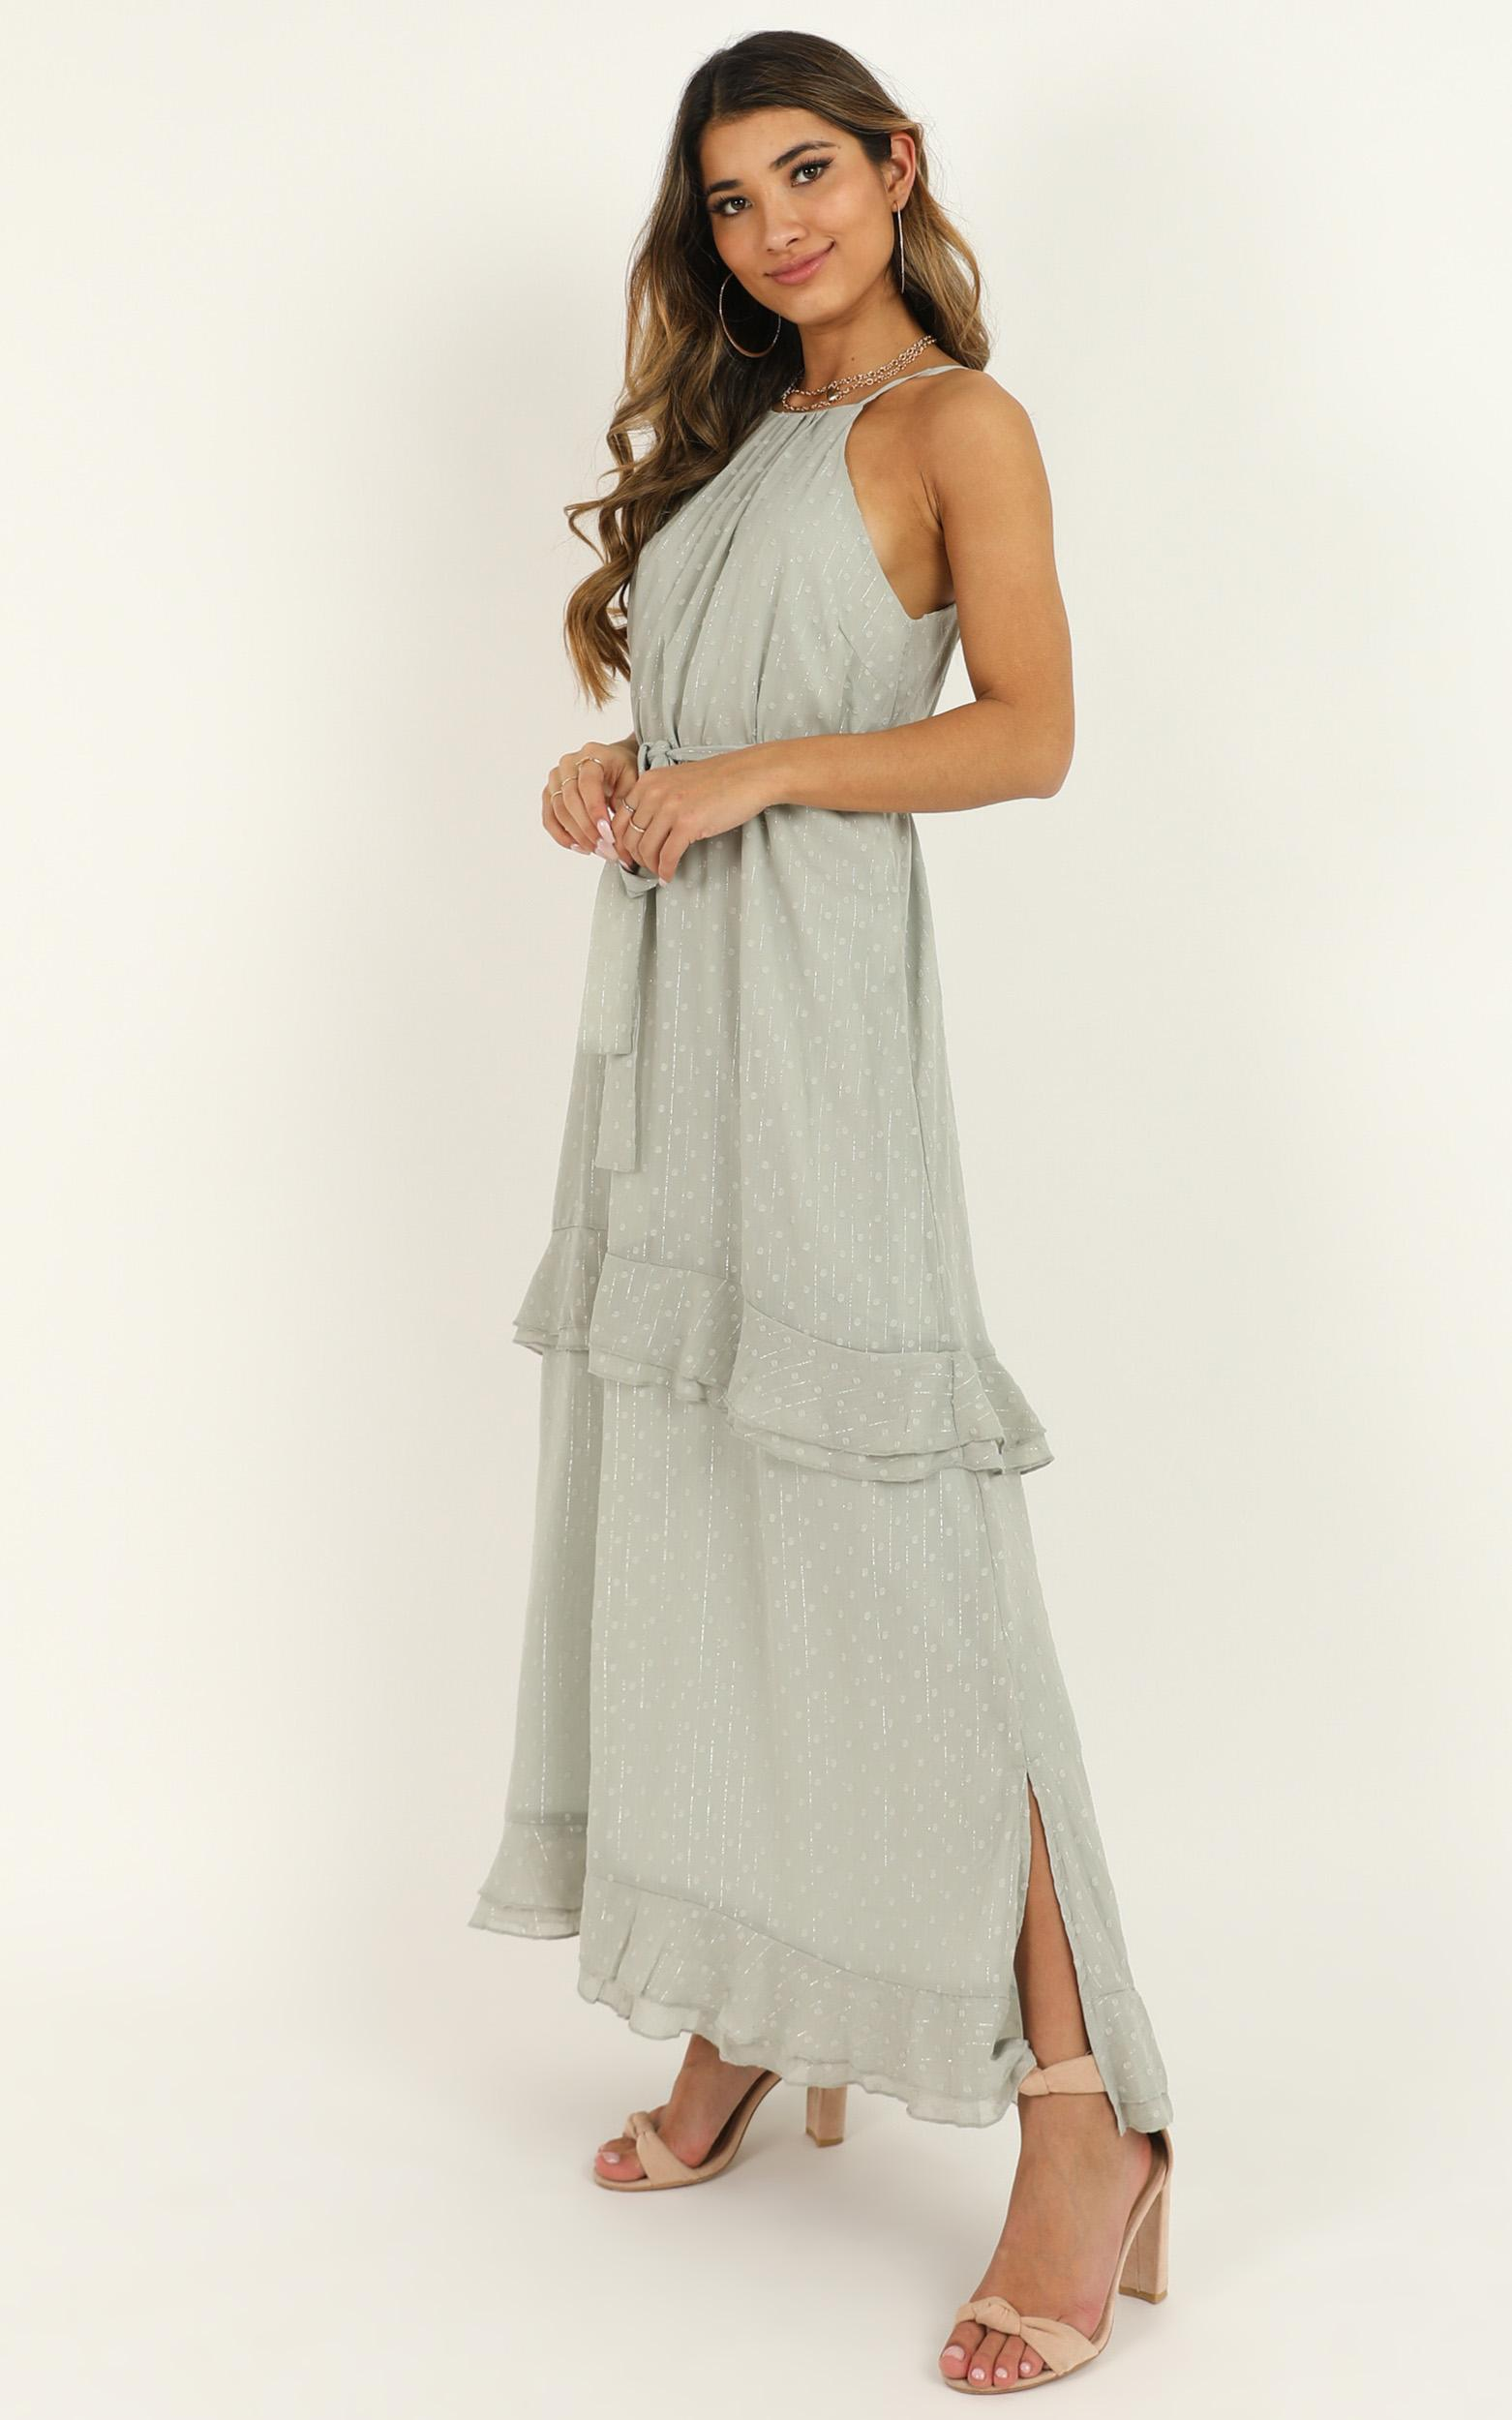 Highest Of Class Dress in sage  - 20 (XXXXL), Sage, hi-res image number null